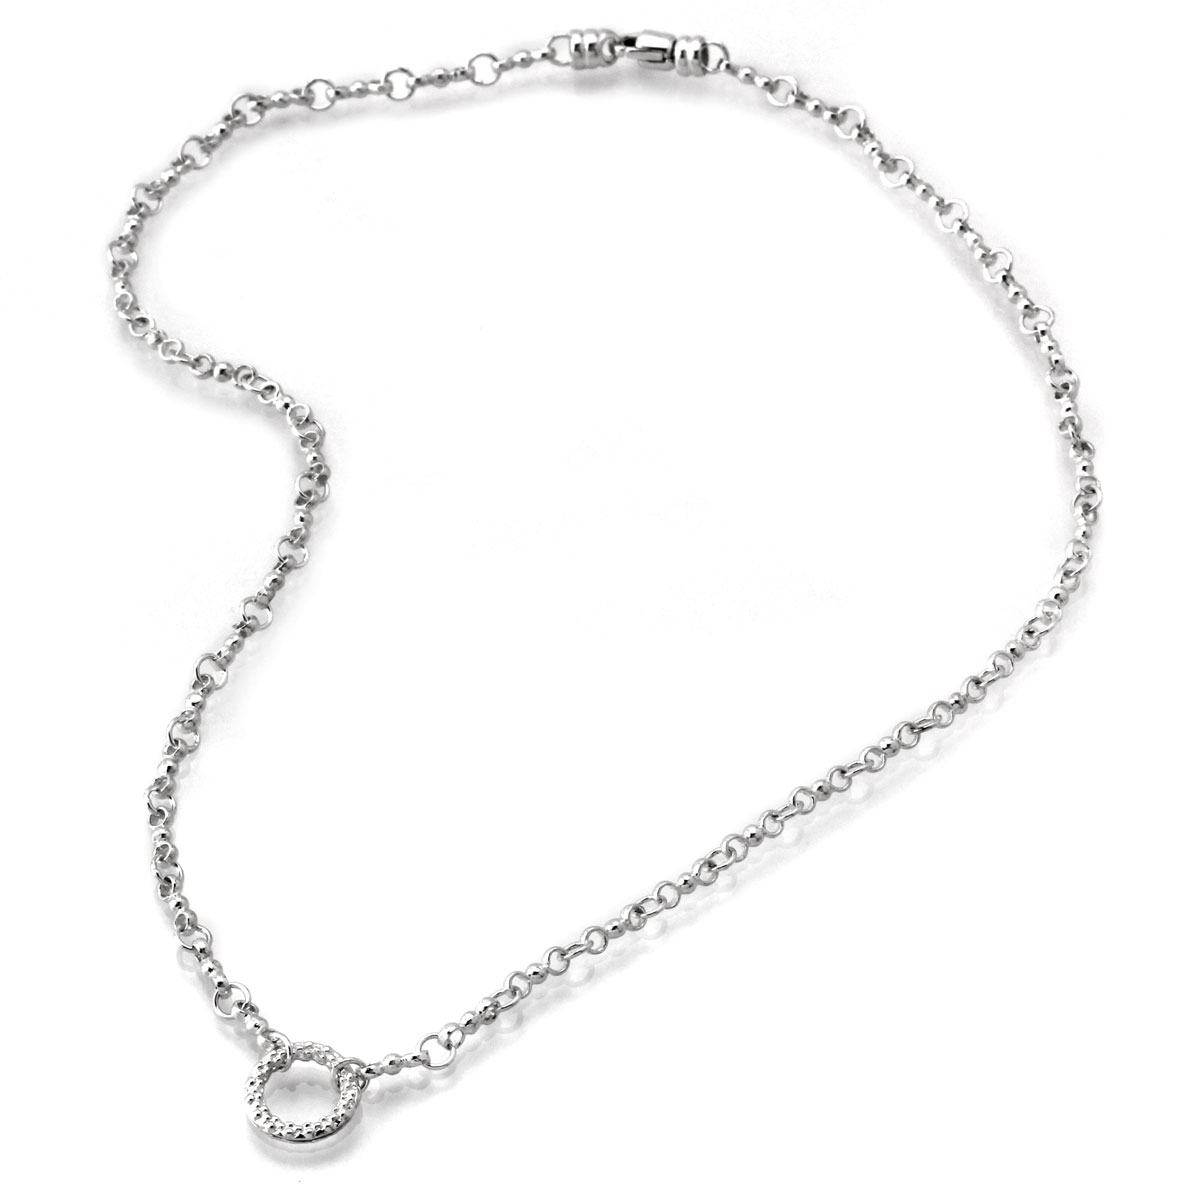 341292-Vahan Sterling Silver Necklace